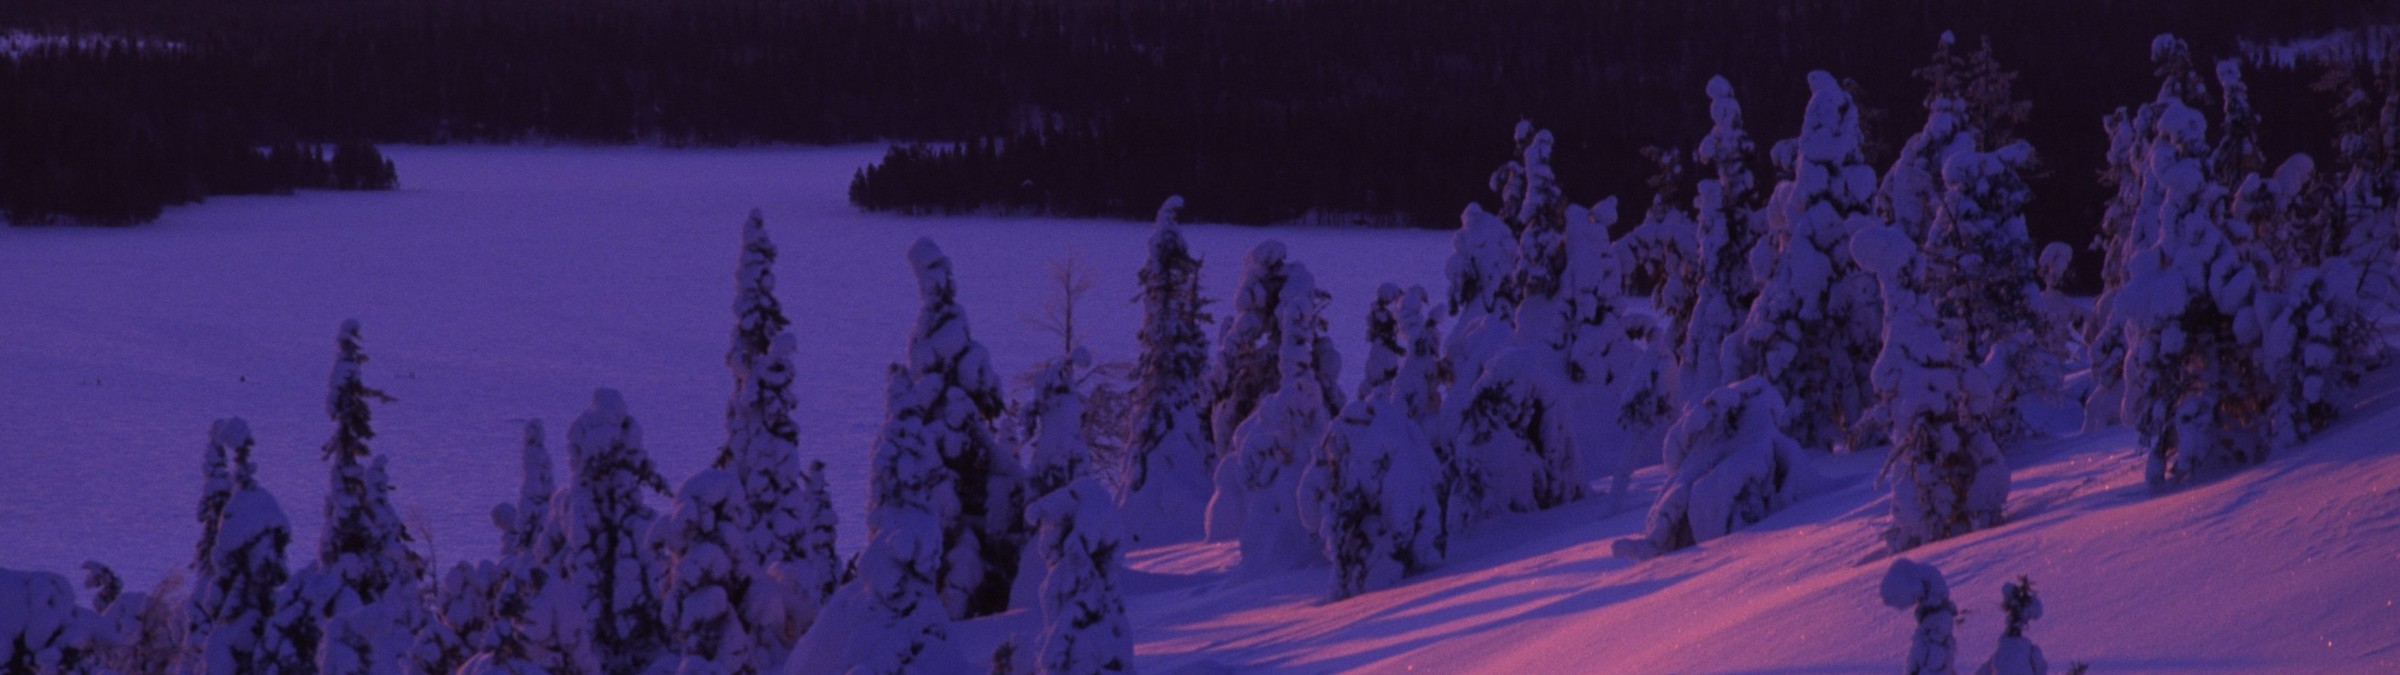 Finland, Images, Ruka